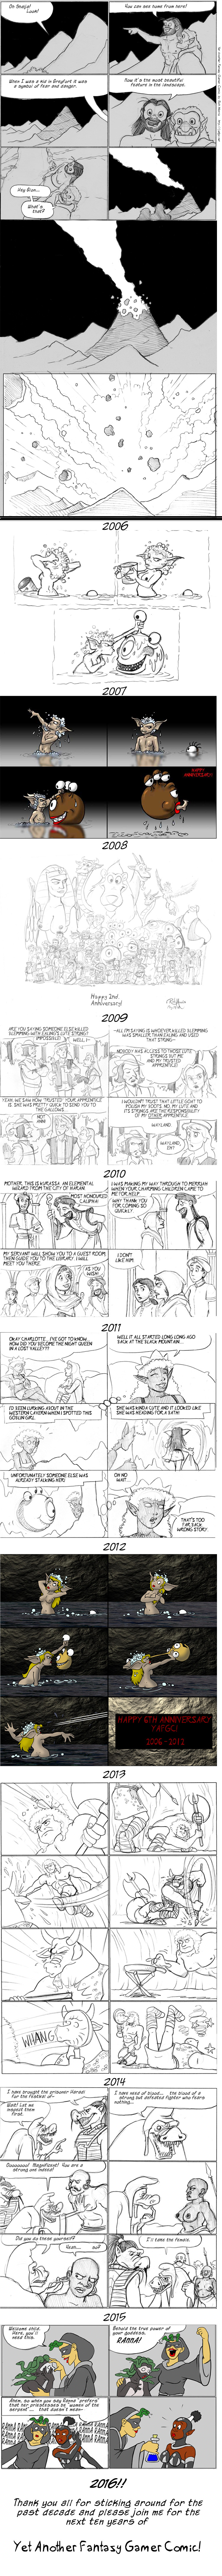 2914 Ten Years Of Yet Another Fantasy Gamer Comic